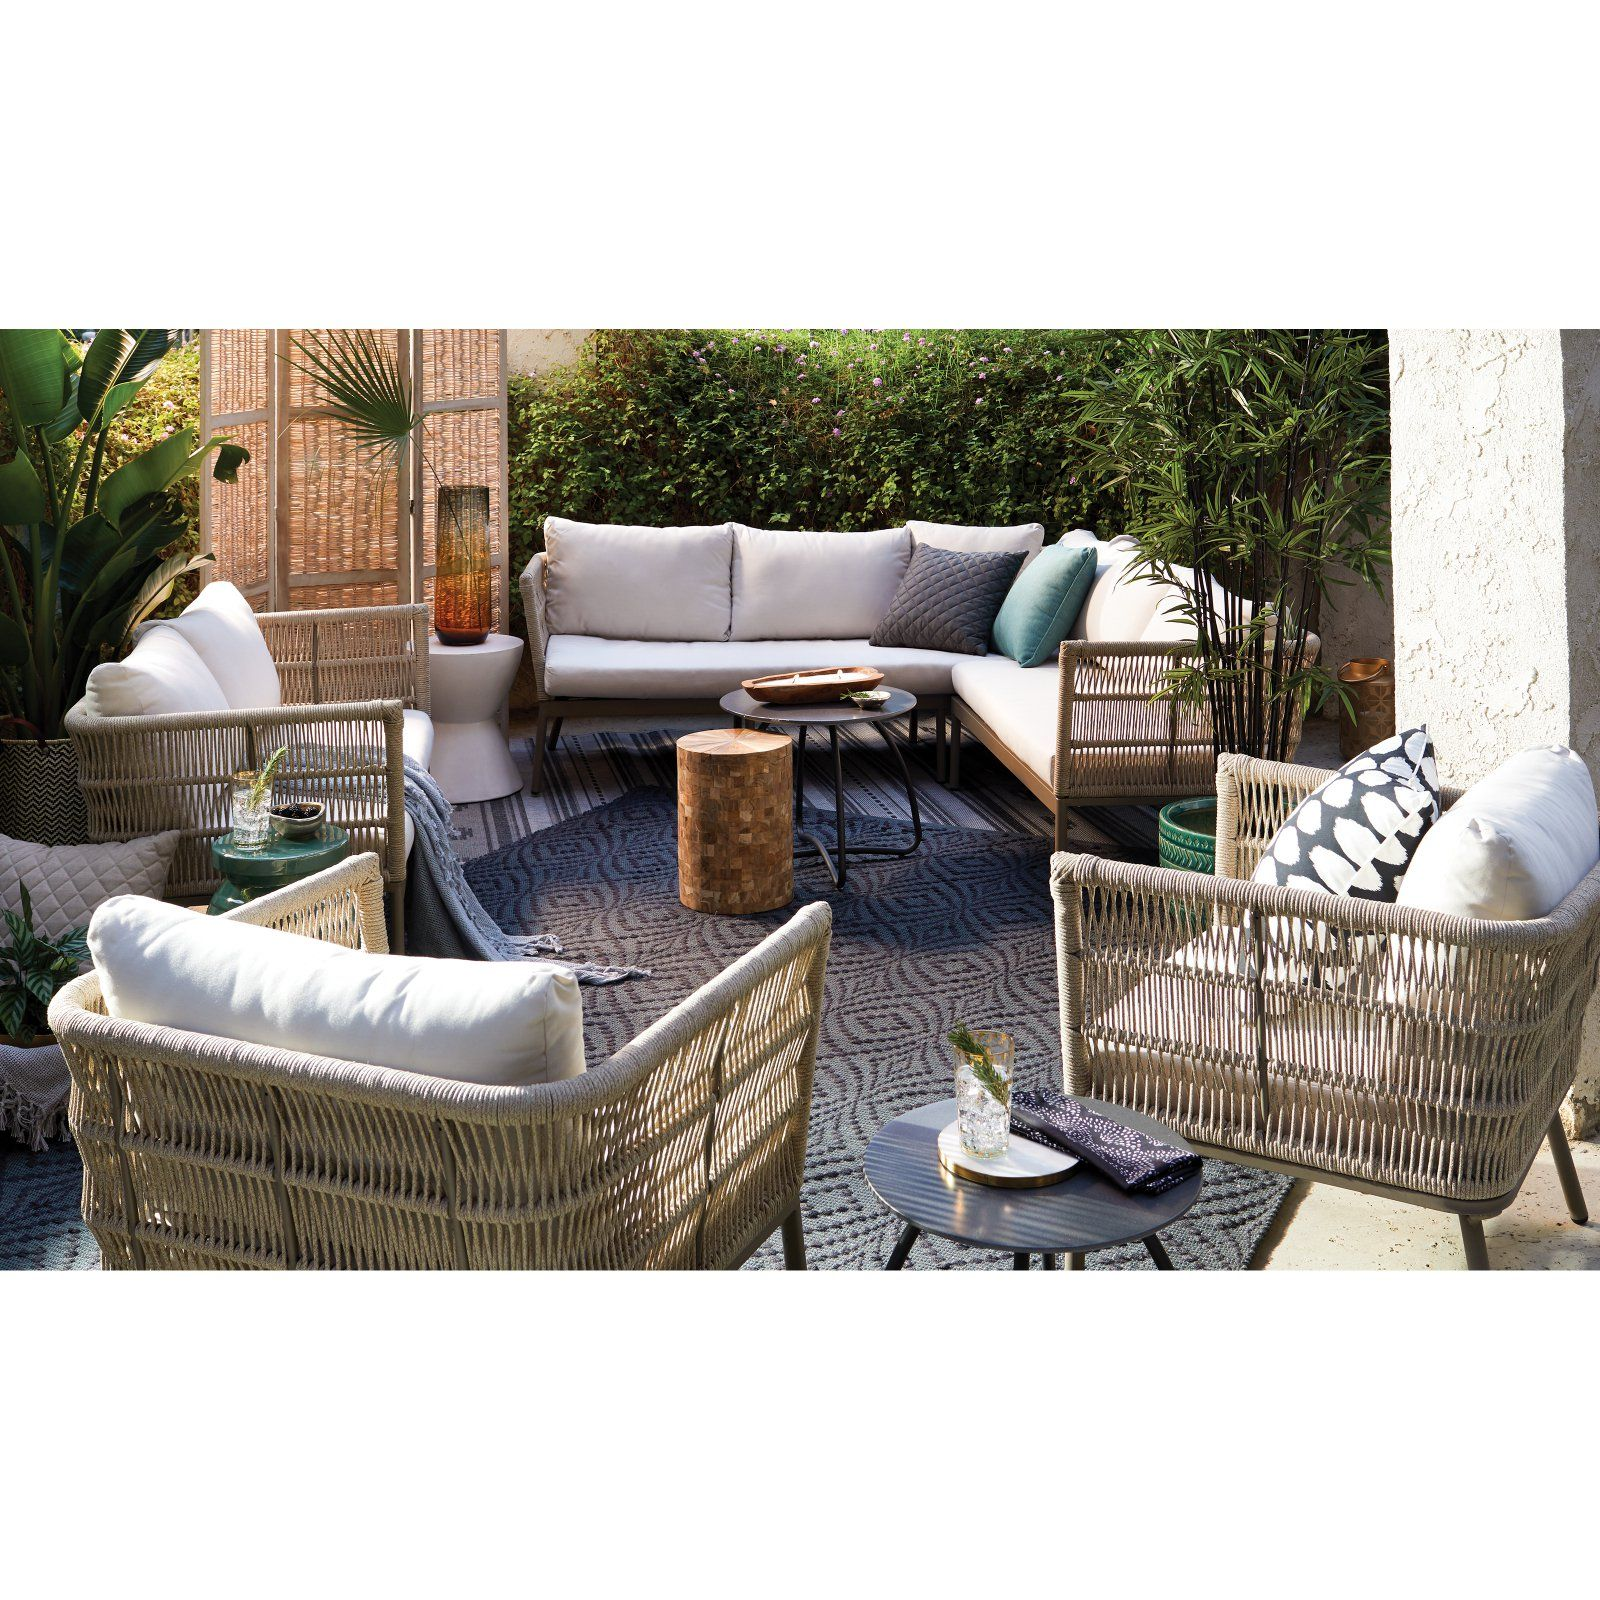 Outstanding Patio Garden Patio Design In 2019 Sofa Set Outdoor Pabps2019 Chair Design Images Pabps2019Com